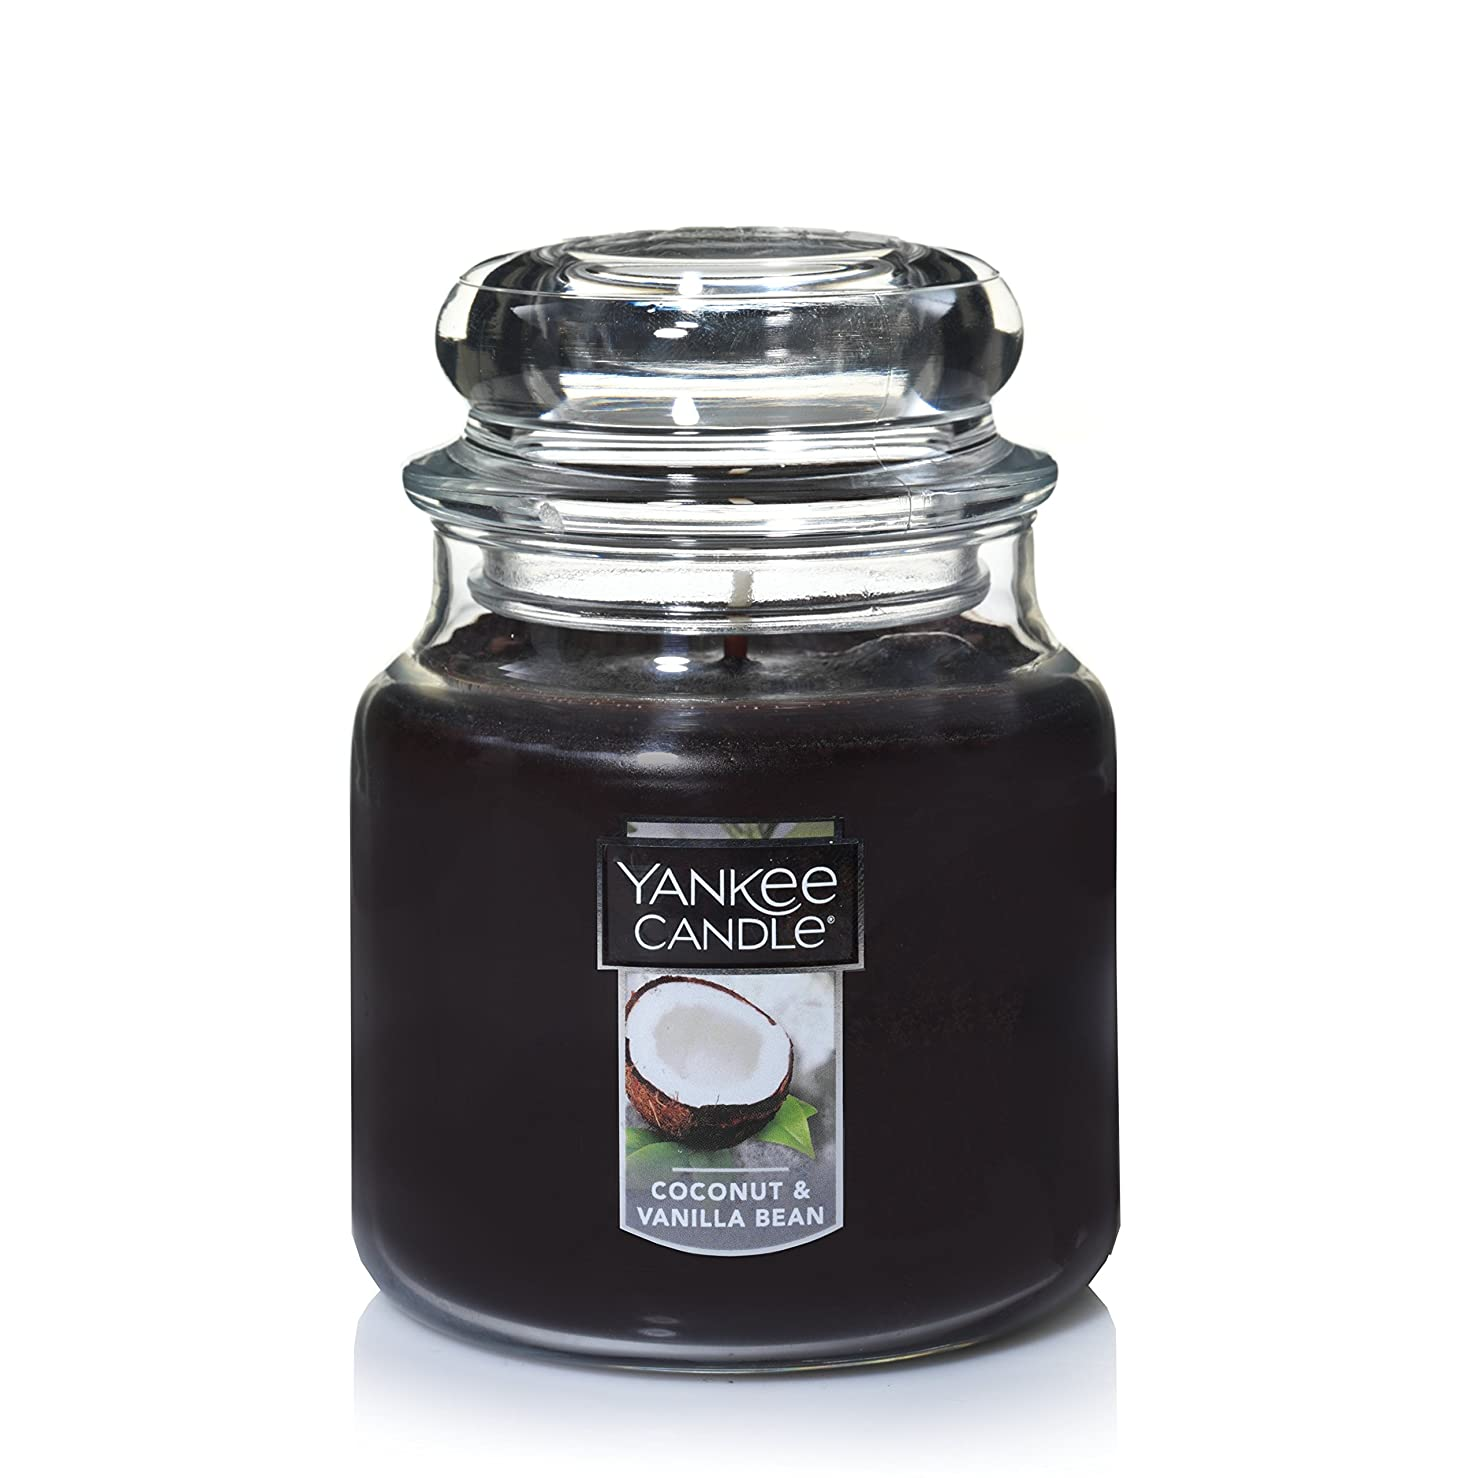 気分お特許Yankee Candle Coconut & Vanilla Bean , Food & Spice香り Medium Jar Candle ブラウン 1284531-YC